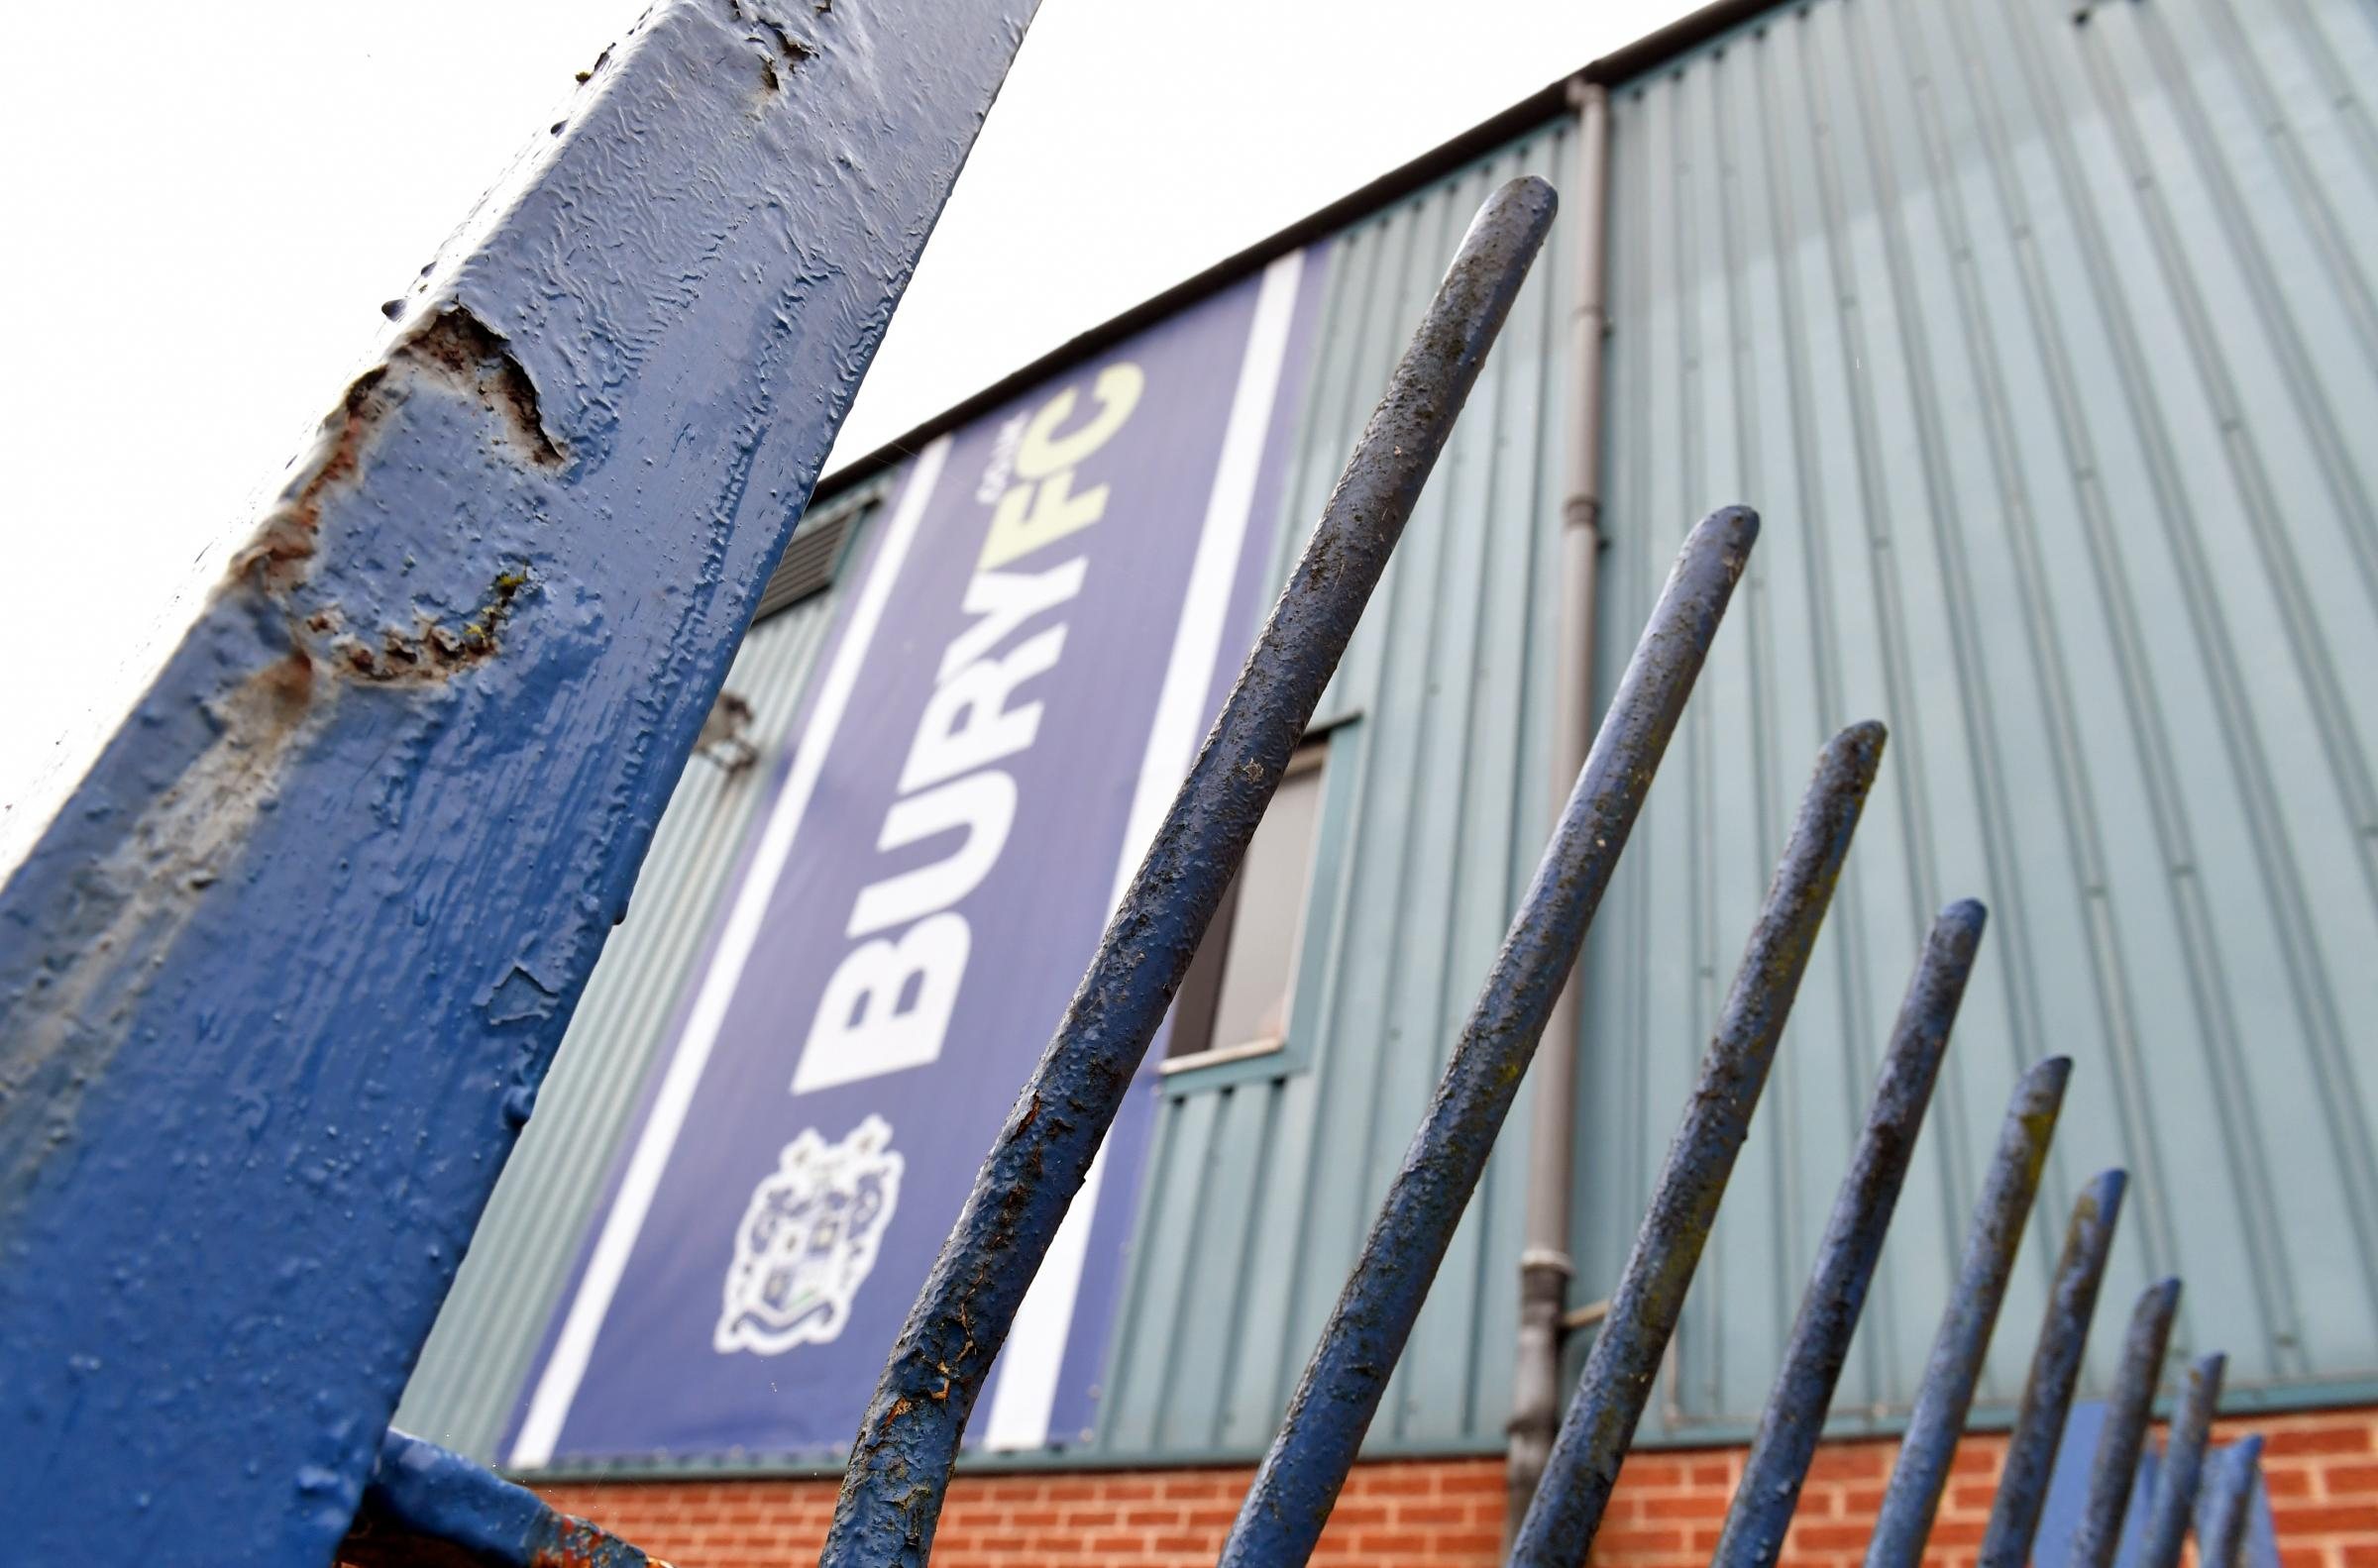 Bury FC fanbase needs to come together, says potential investor